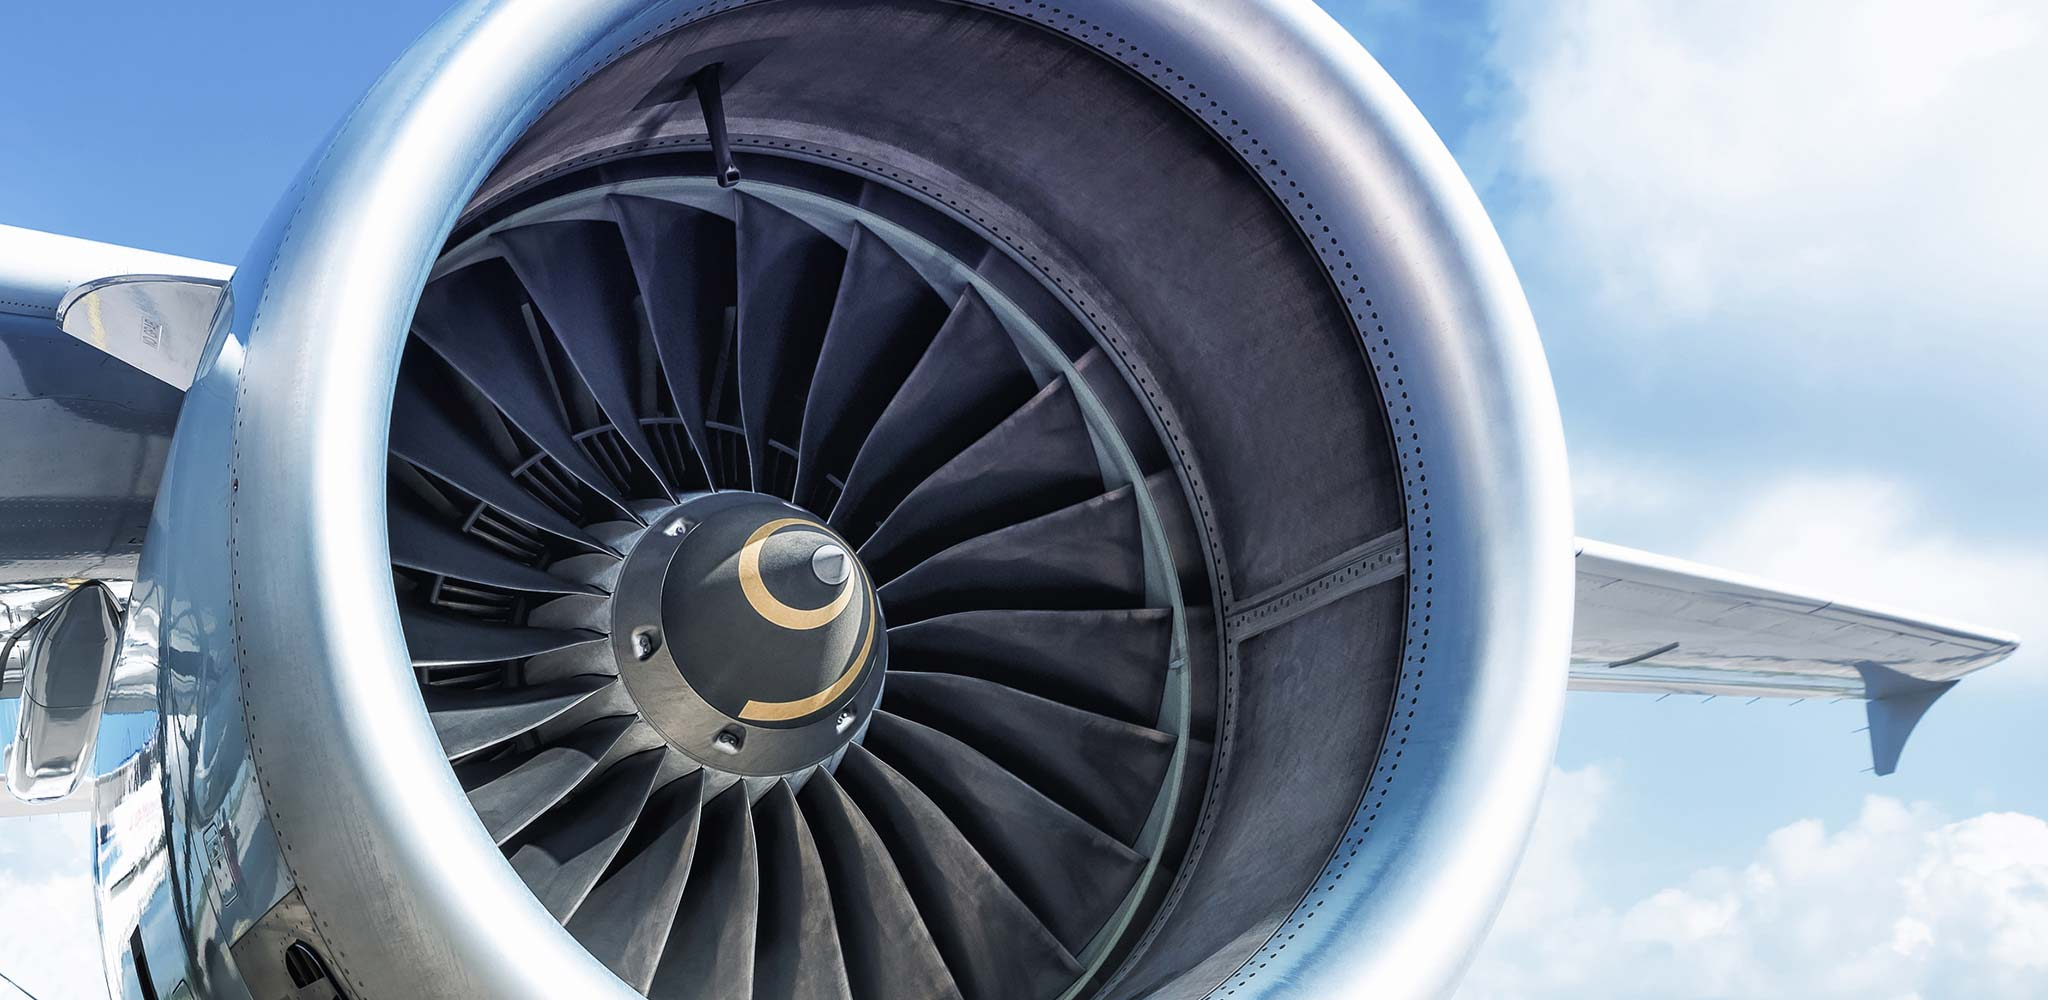 An aircraft turbine symbolizes the aerospace industry, an important sales market for MAPAL.